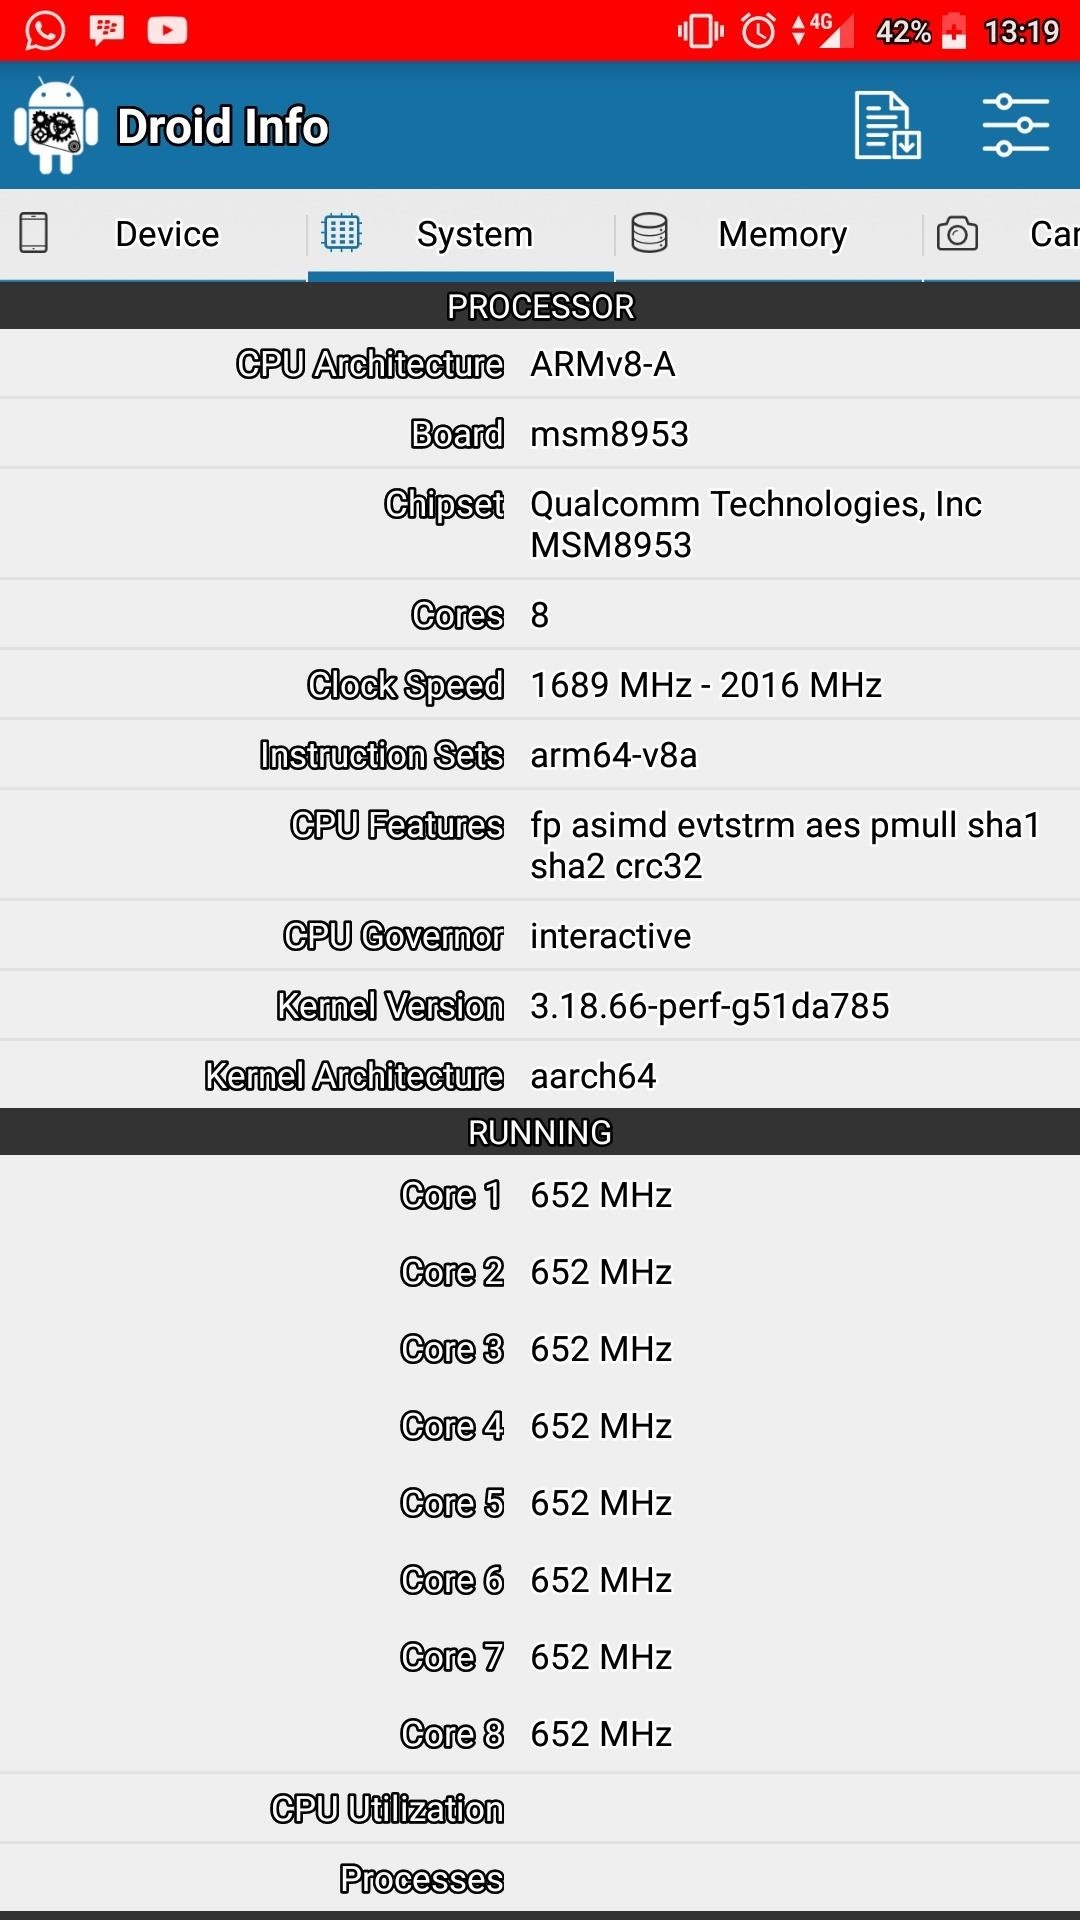 Android Basics: How to See What Kind of Processor You Have